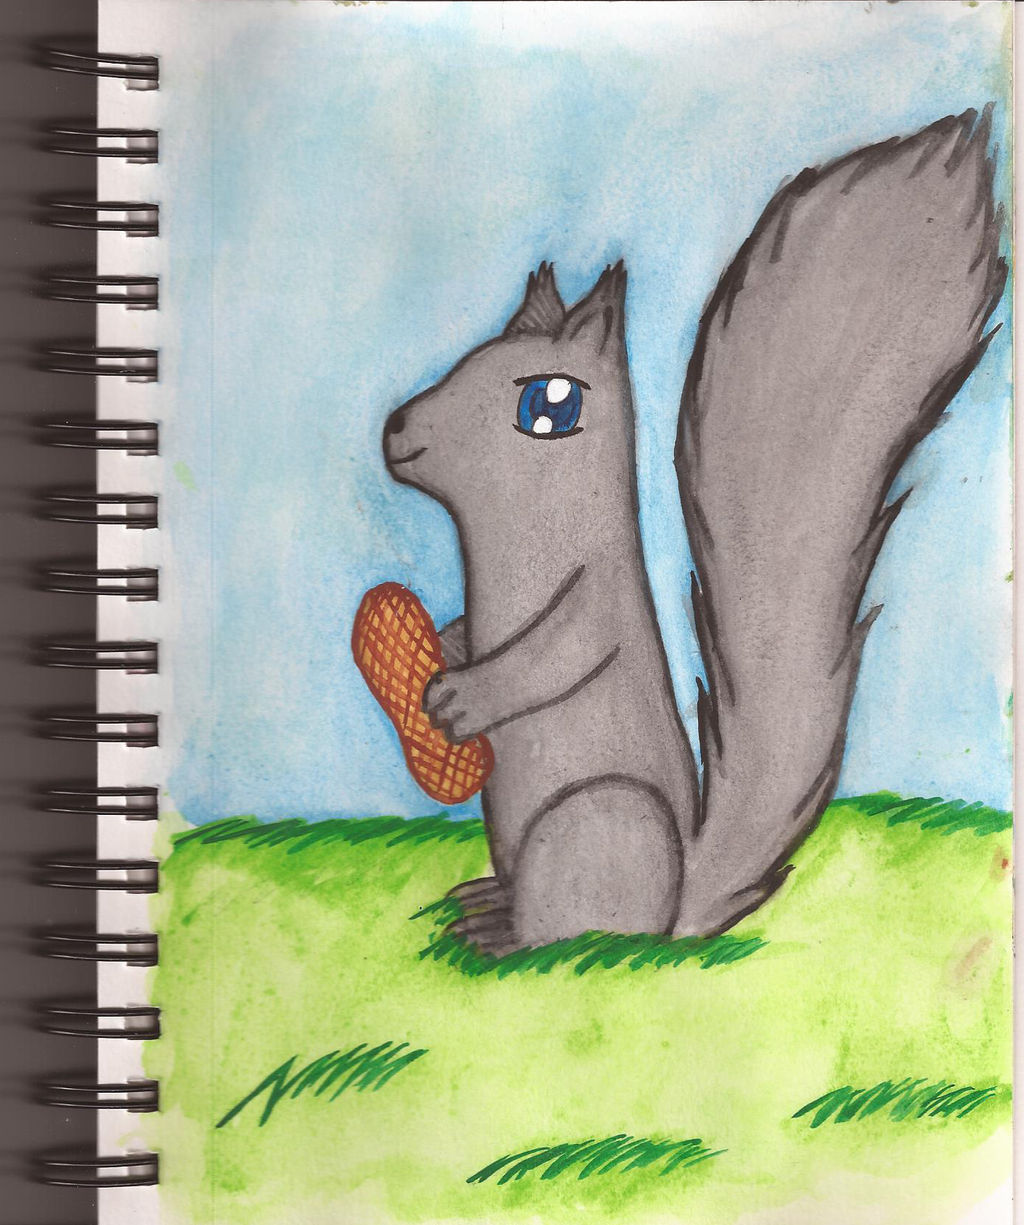 Watercolour Notebook #9: Squirrel with Peanut by Greenpolarbear47